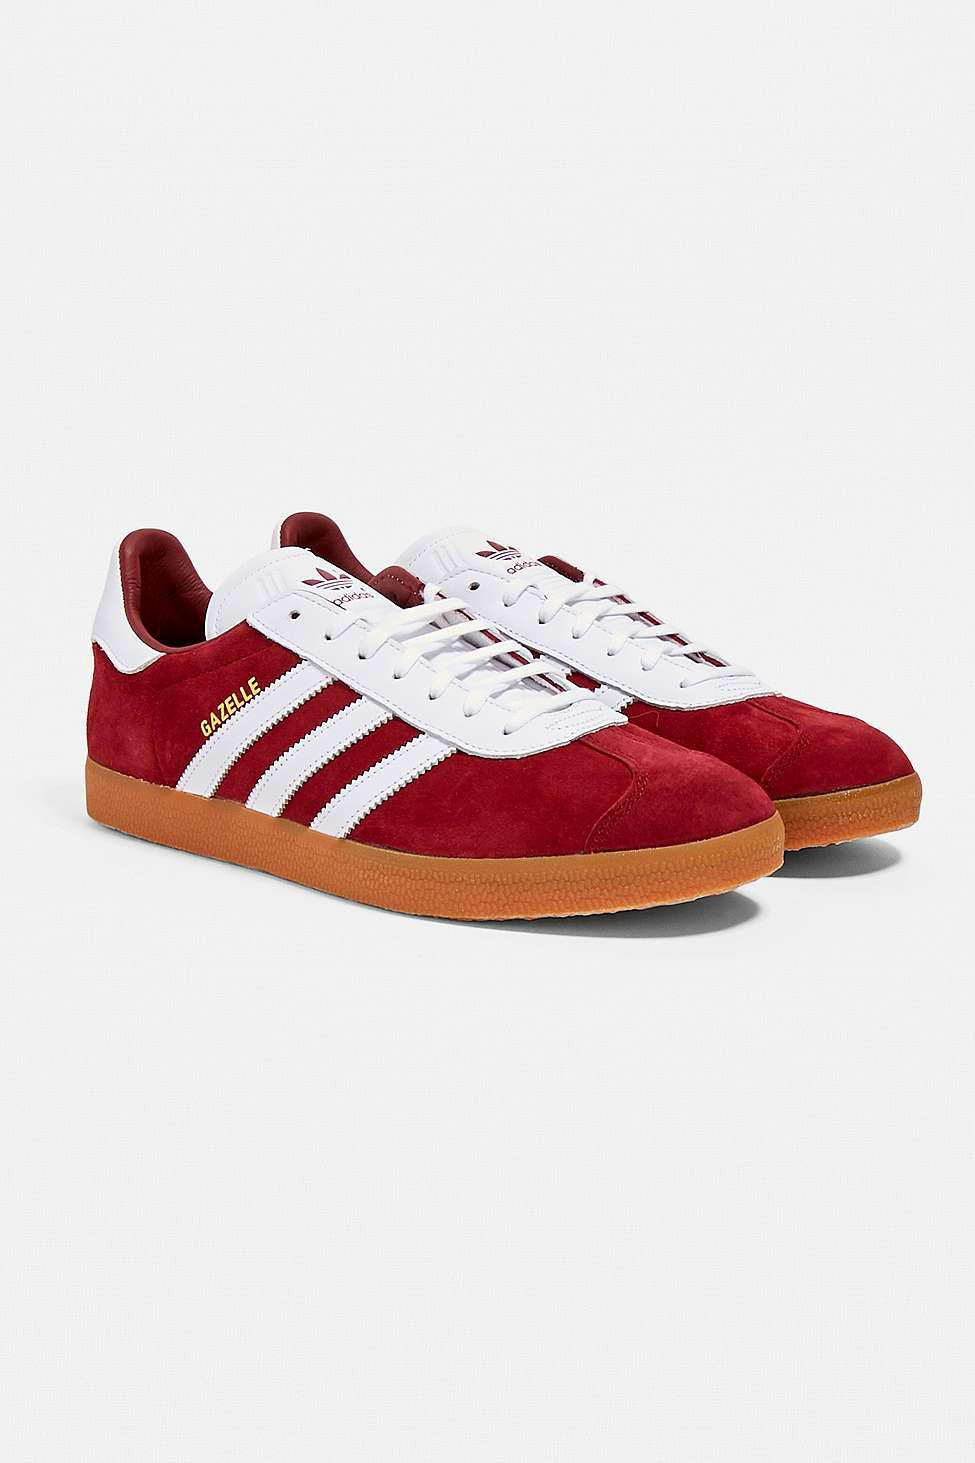 b34a8e990bb Adidas Gazelle Burgundy Trainers in Red for Men - Lyst